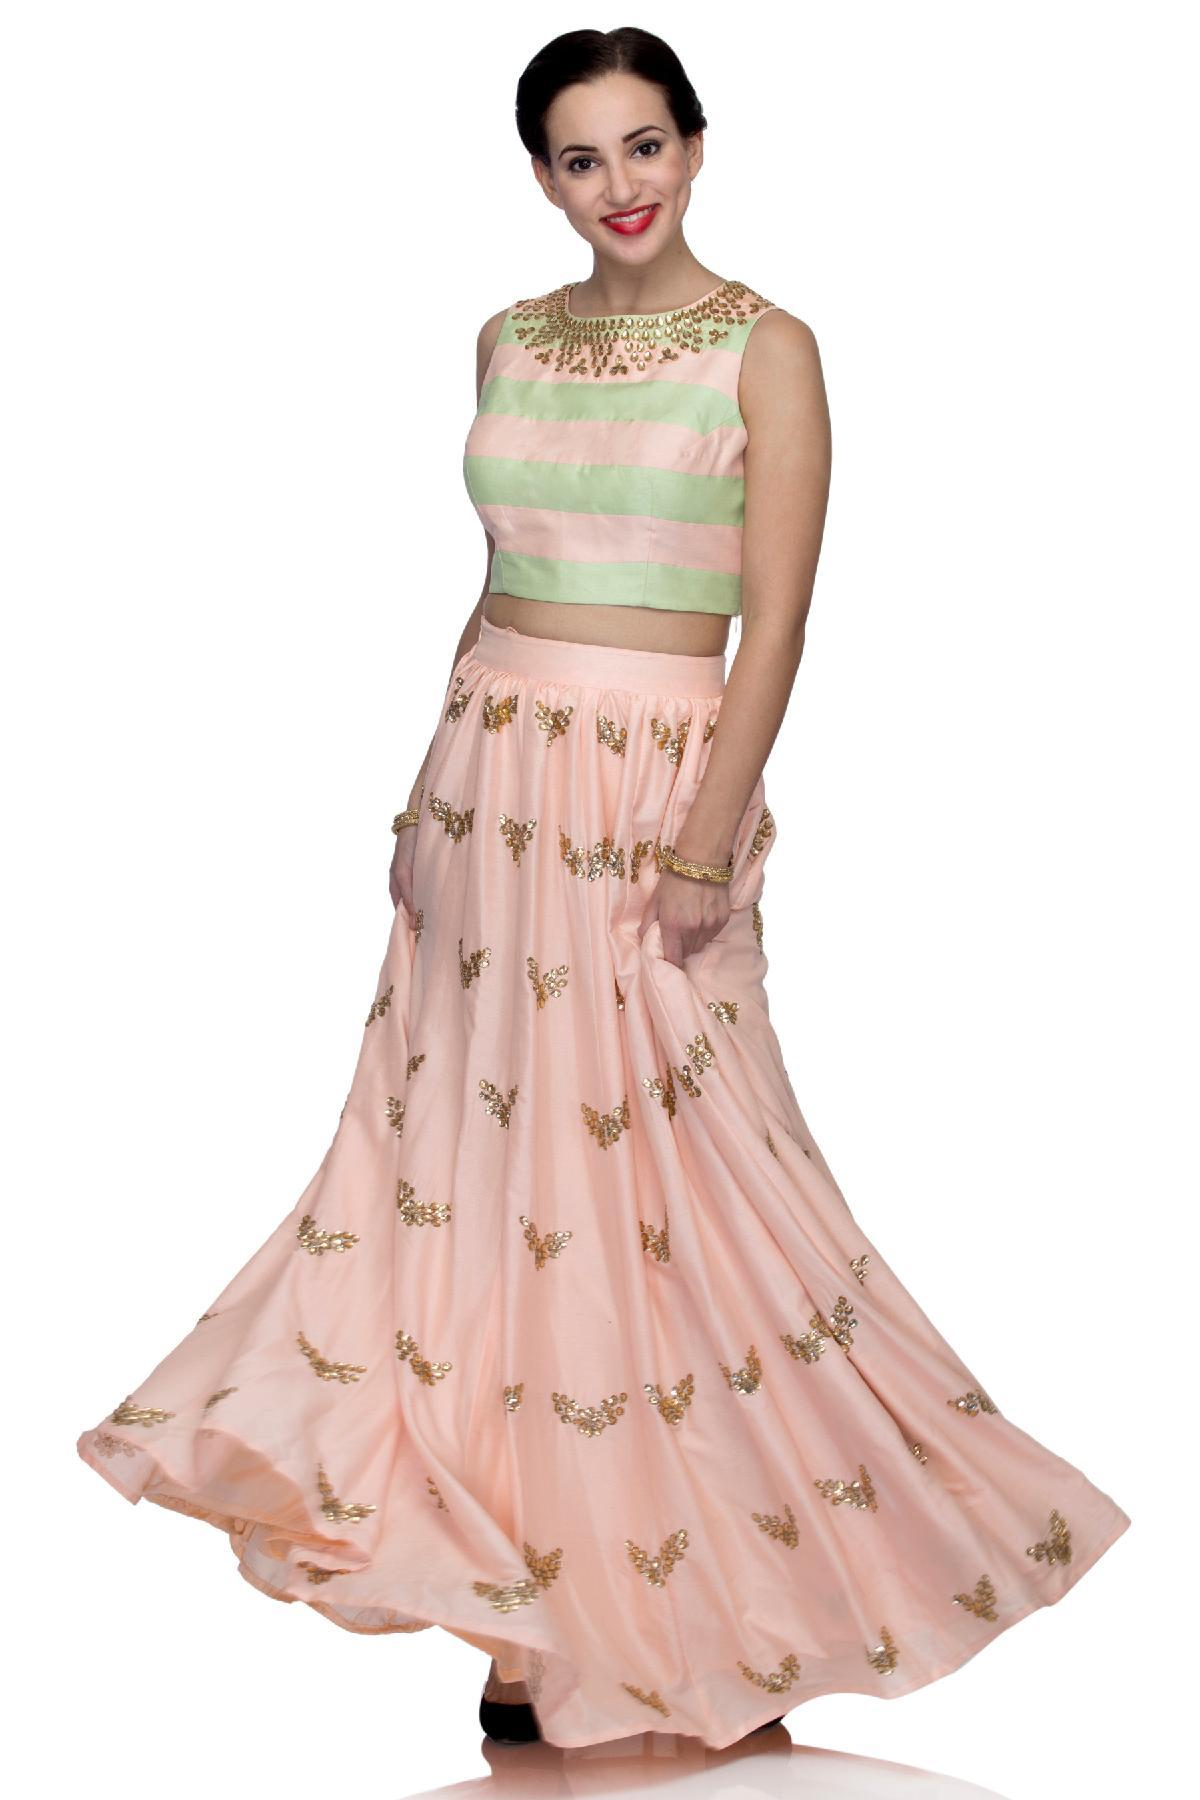 8f148551cc57 Mint Green and Peach Stone Work Crop Top and Skirt by Trinesha's ...